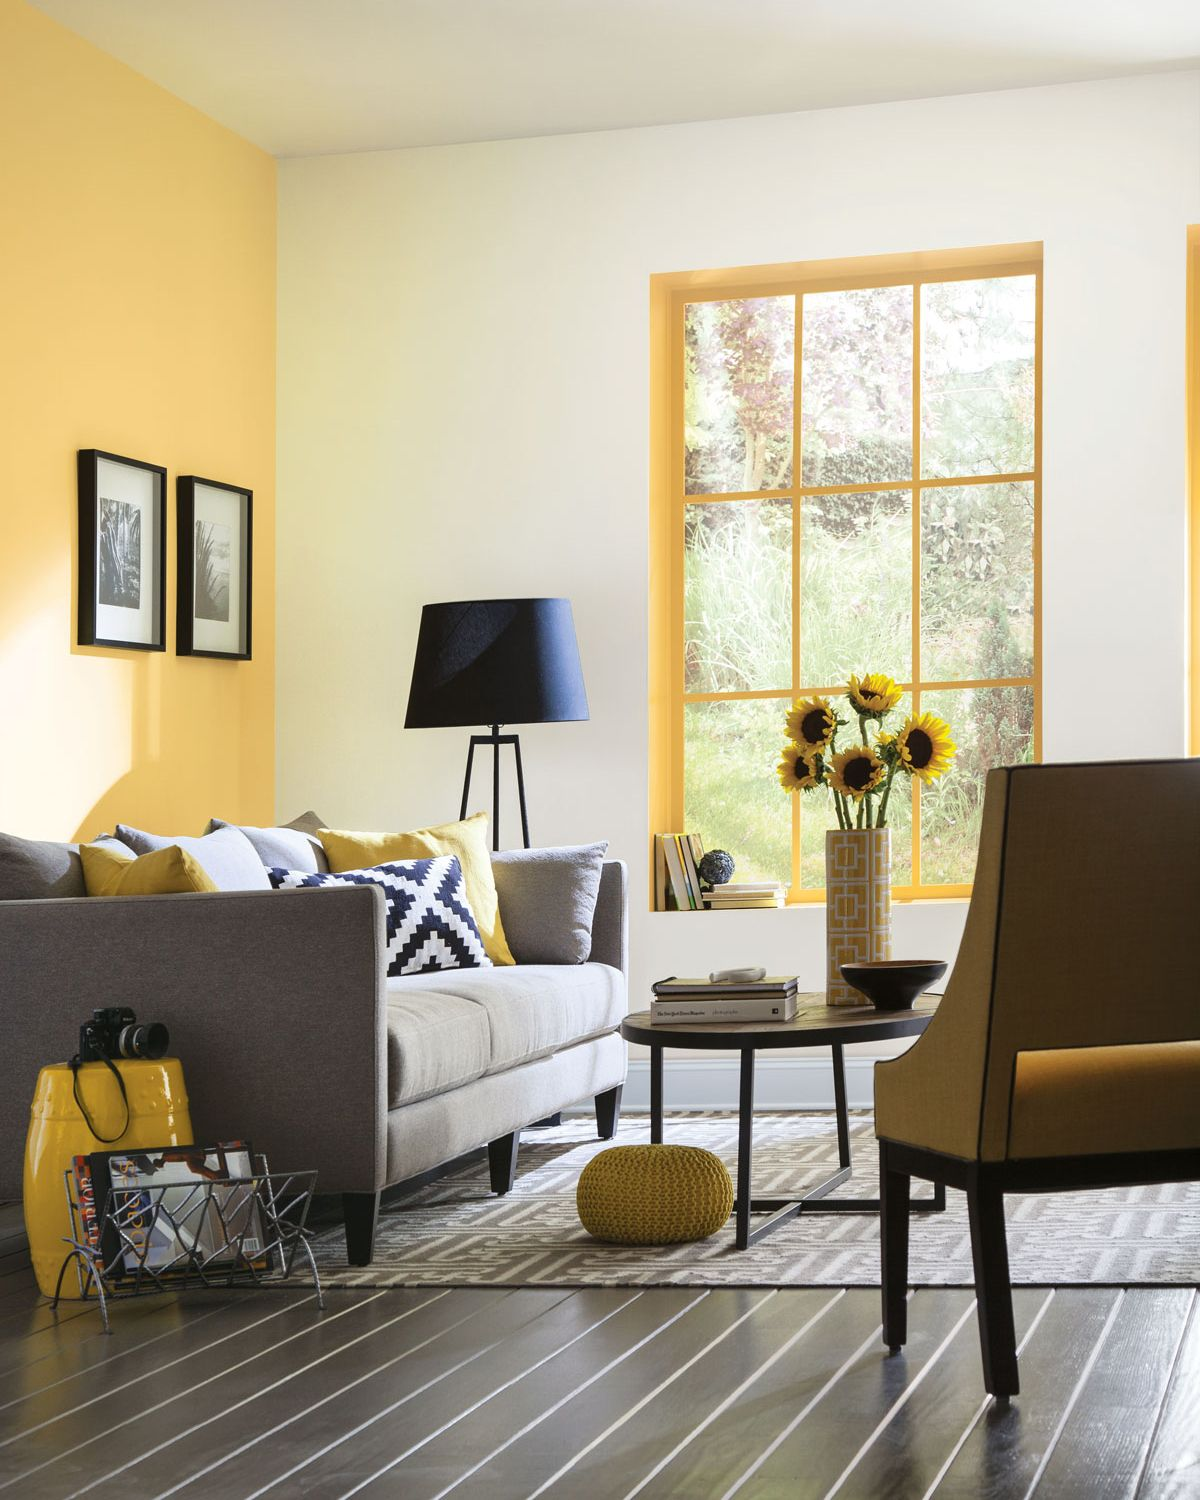 Looking for an idea to help brighten your home painting window trim a sunny color like honey bees sw 9018 lets spring bloom indoors all year long